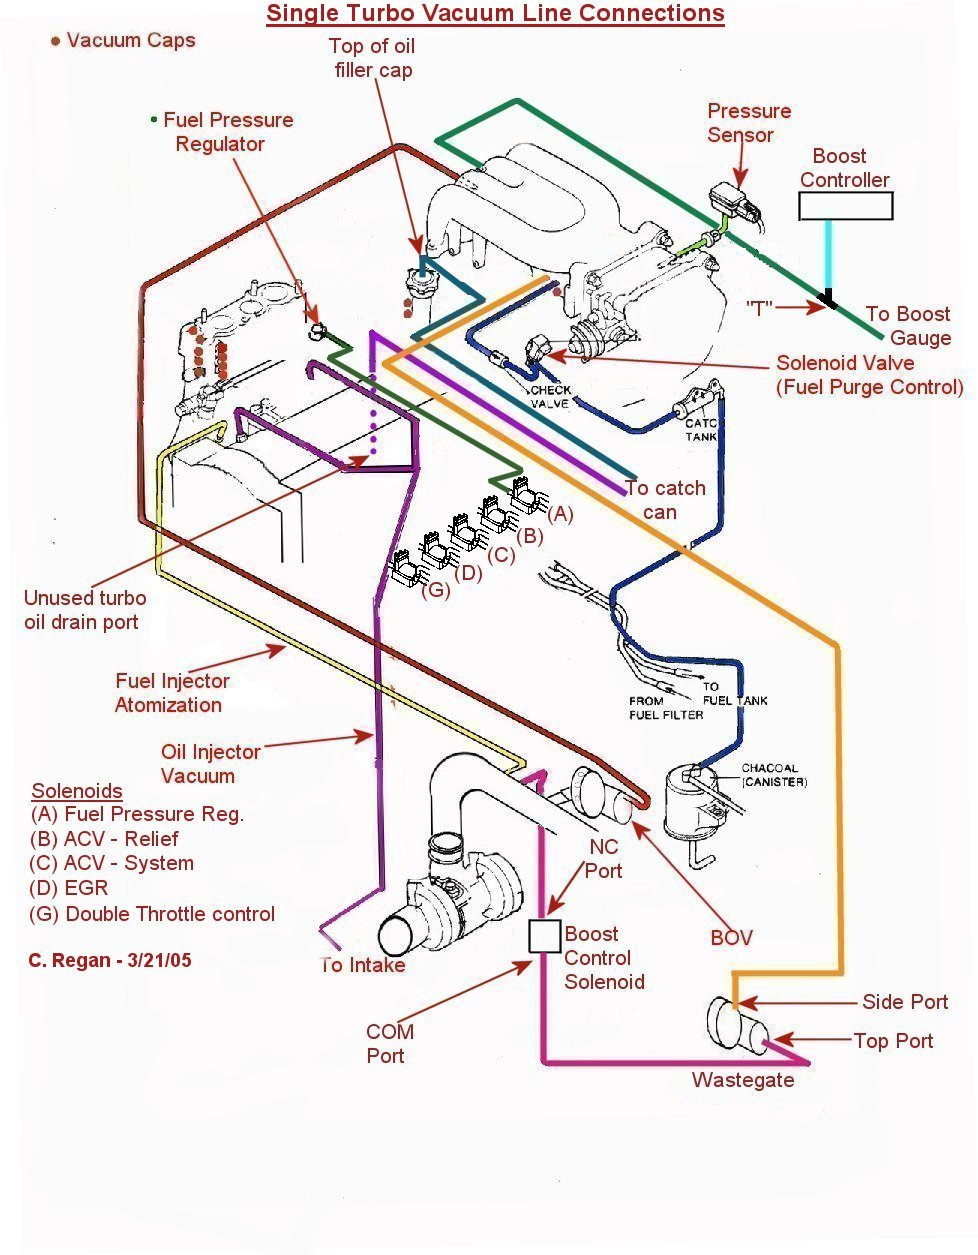 Rx8 Fuel Line Diagram Opinions About Wiring 1995 Defender 90 Steering Linkage Single Turbo Vac Diagrams Nopistons Mazda Rx7 Rotary Forum Rh Com Rx 8